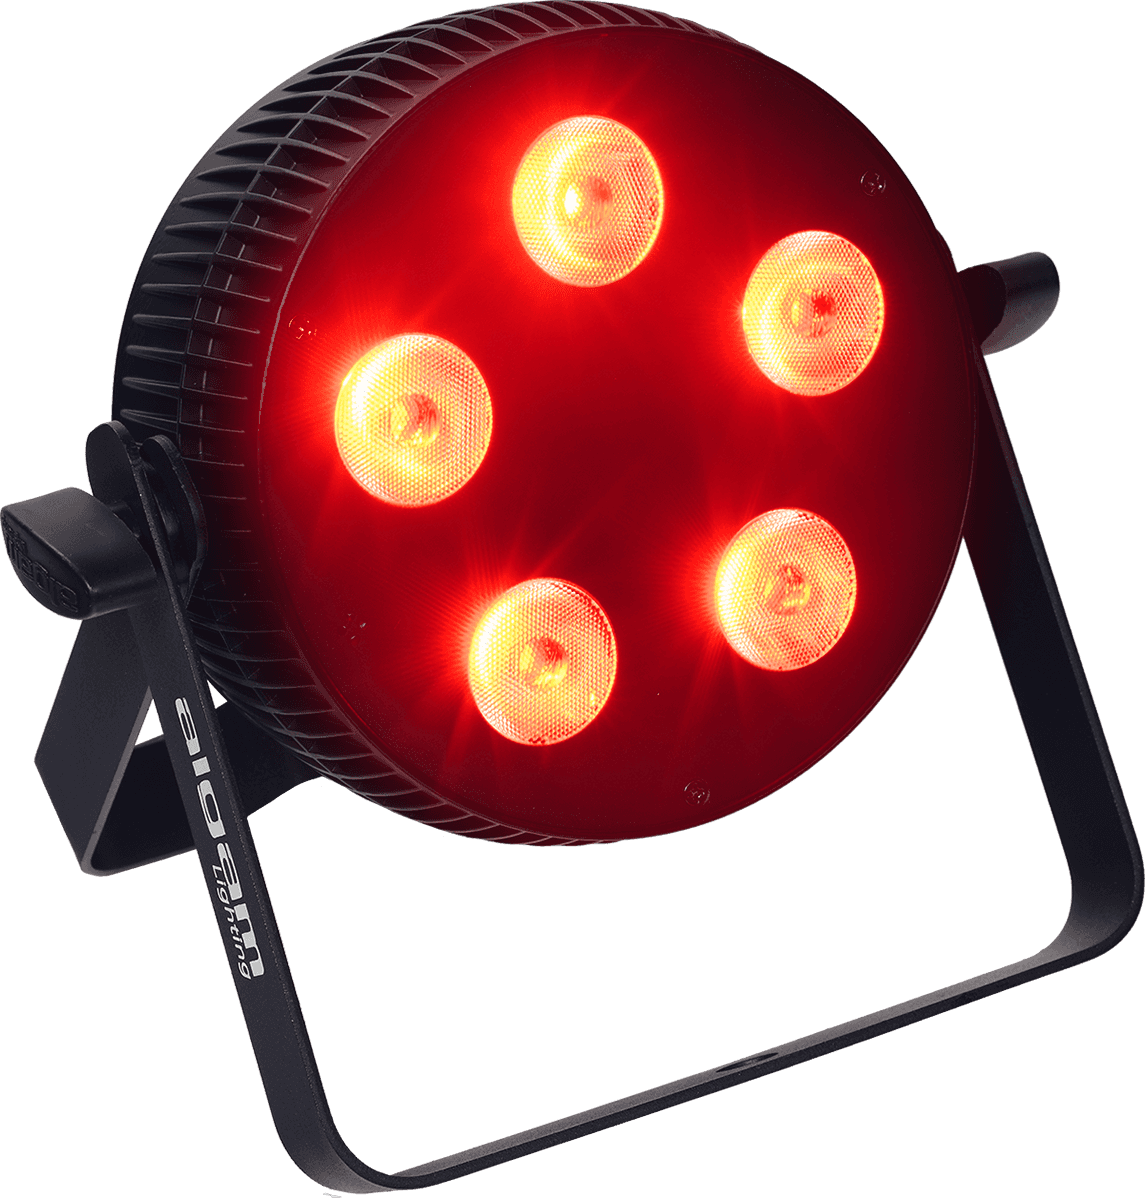 ALGAM LIGHTING SLIMPAR 510 QUAD